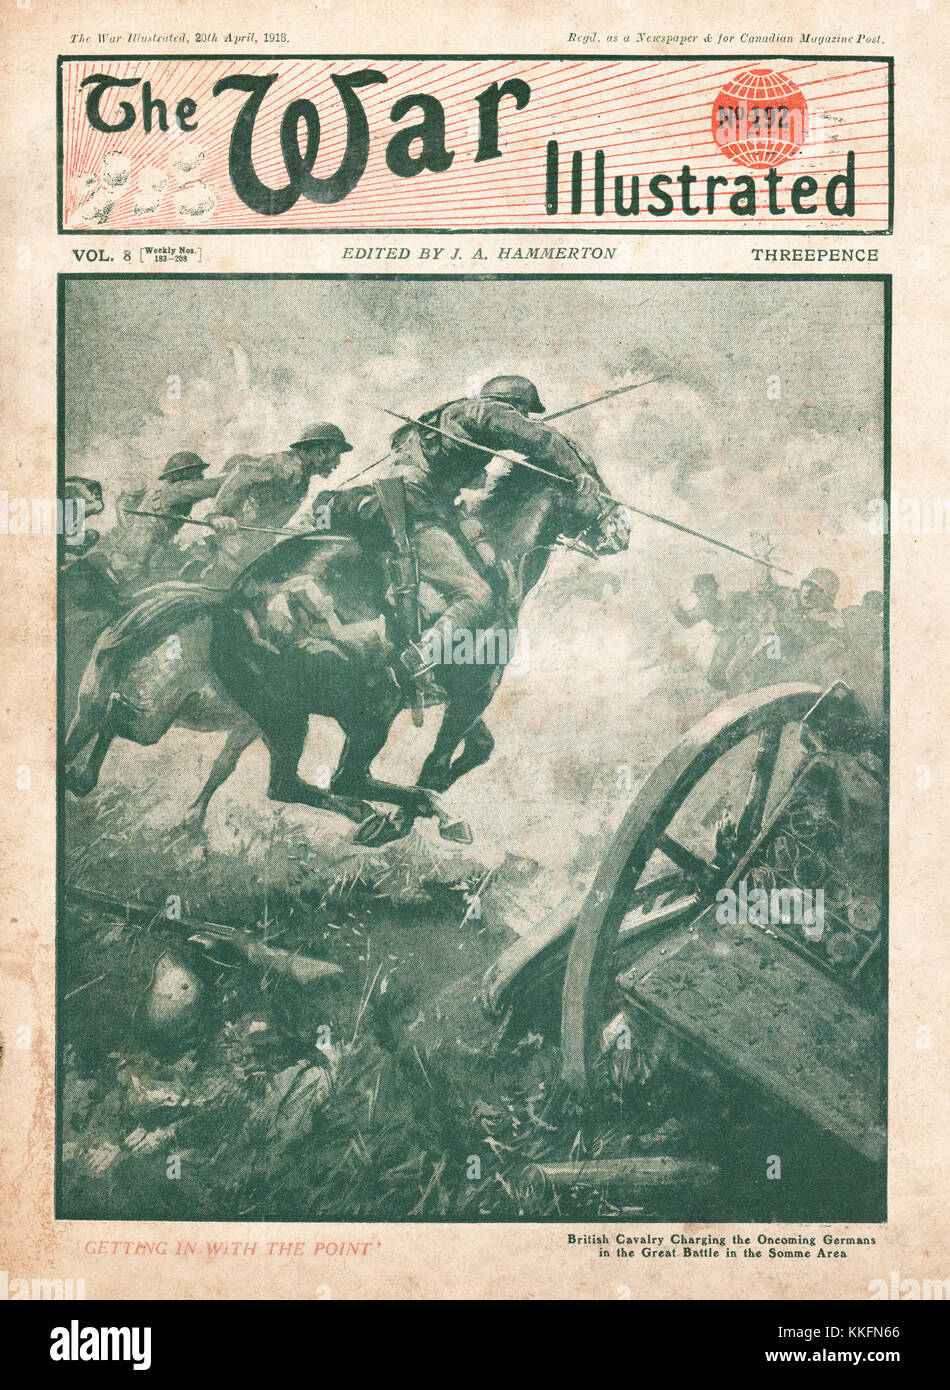 1918 War Illustrated Cavalry Charge on the Somme - Stock Image